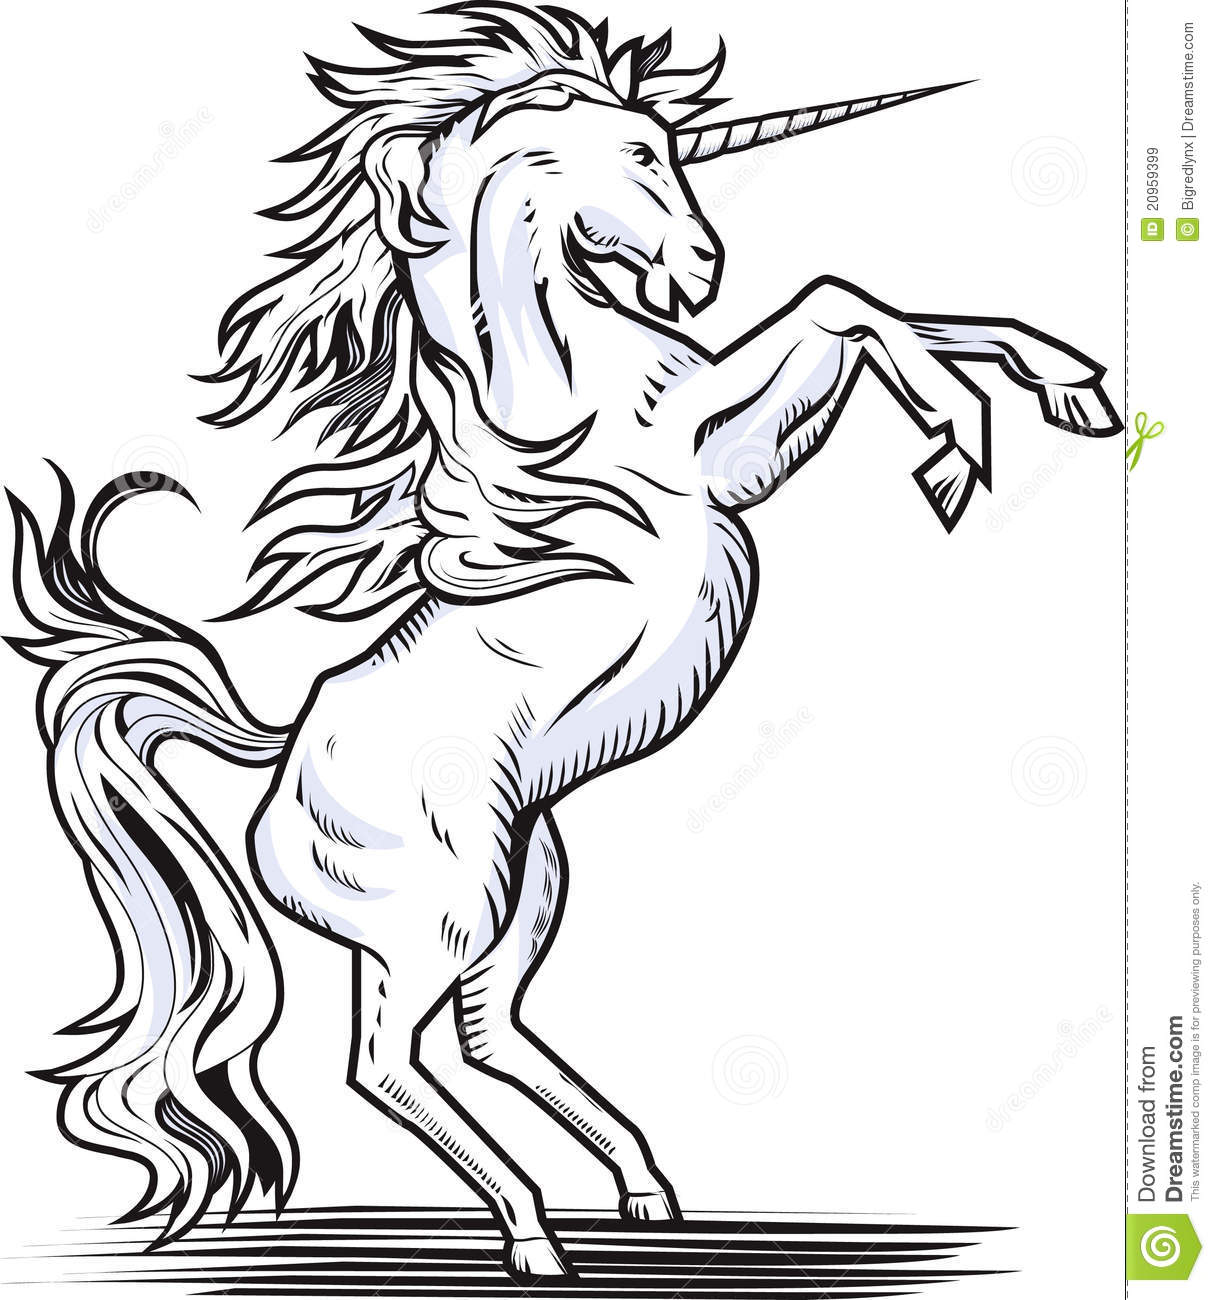 Jpg To Line Drawing : Rearing unicorn royalty free stock images image